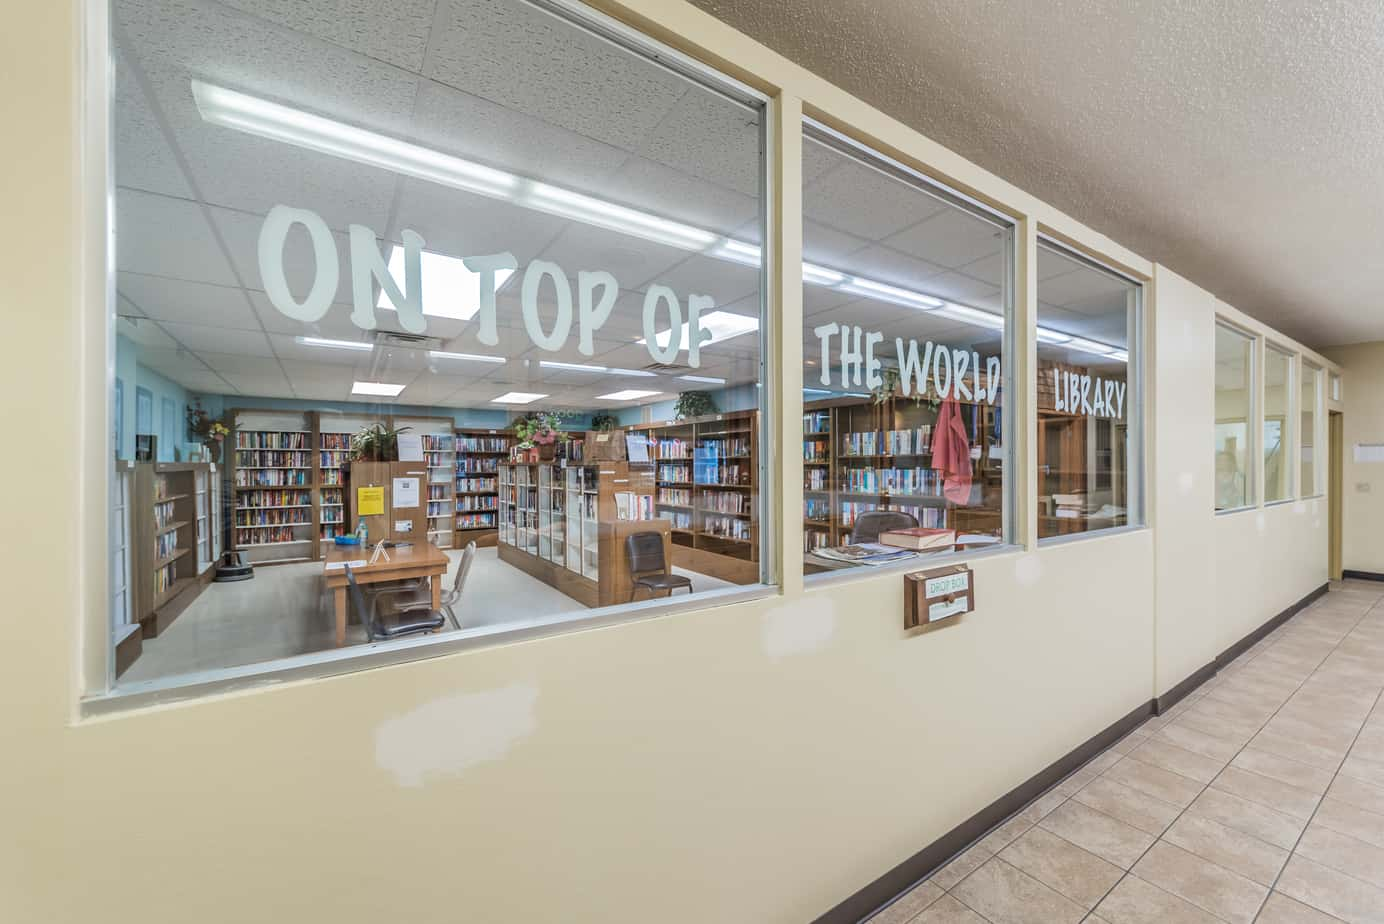 22.5-2285-Israeli-Dr-#17-Clearwater-Fl-33763-Library